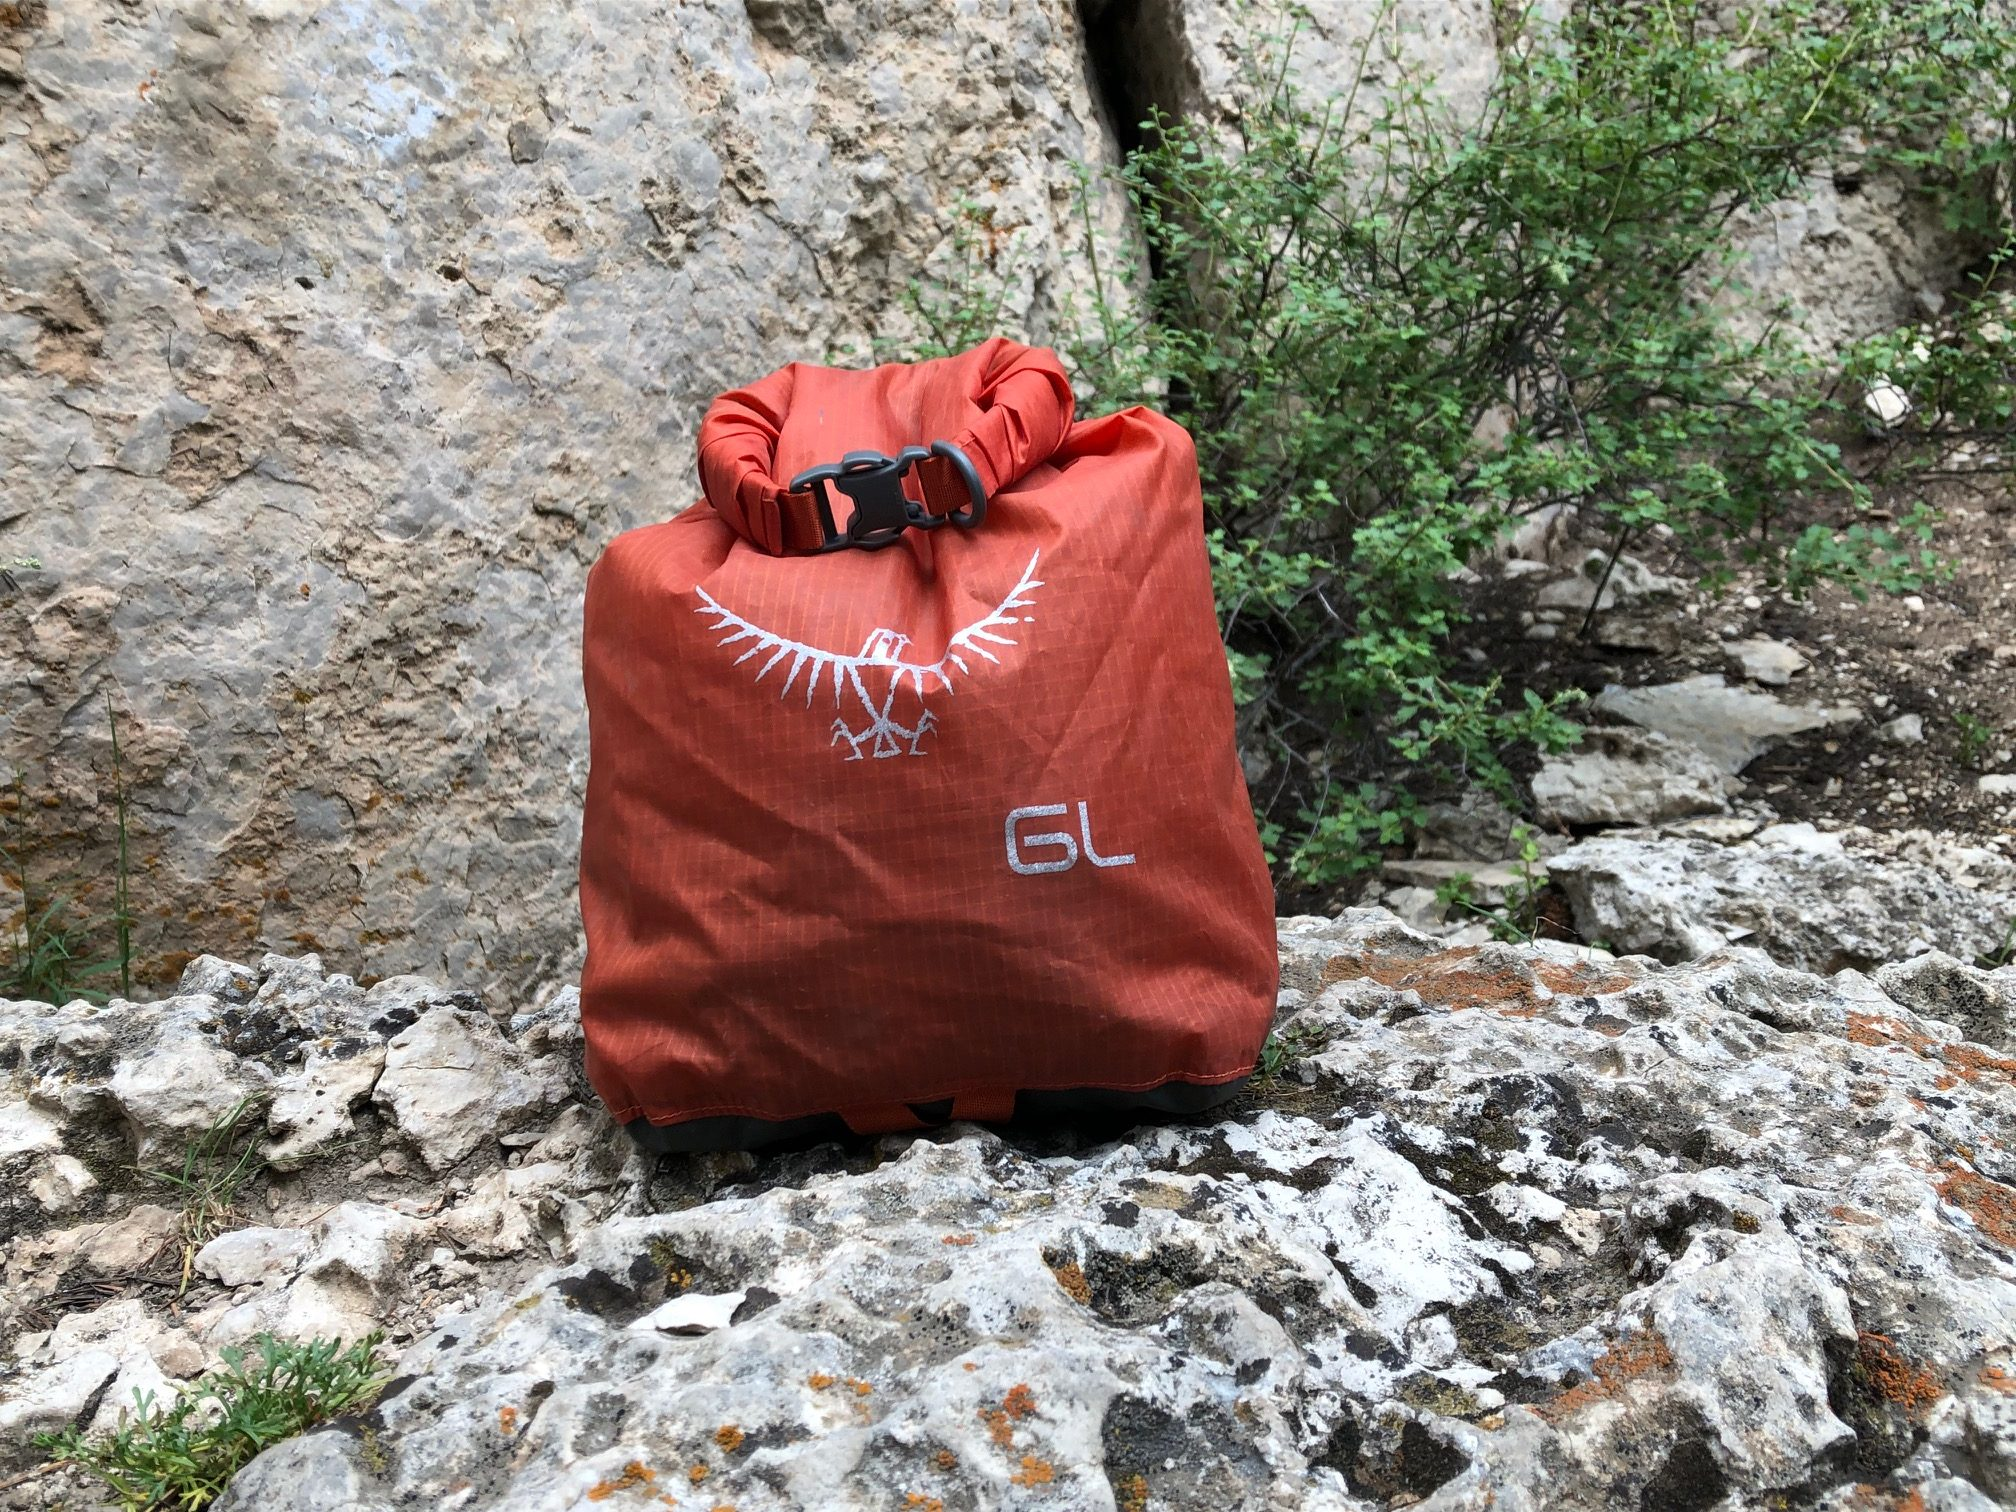 Osprey Ultralight Dry Sack in use at the crag